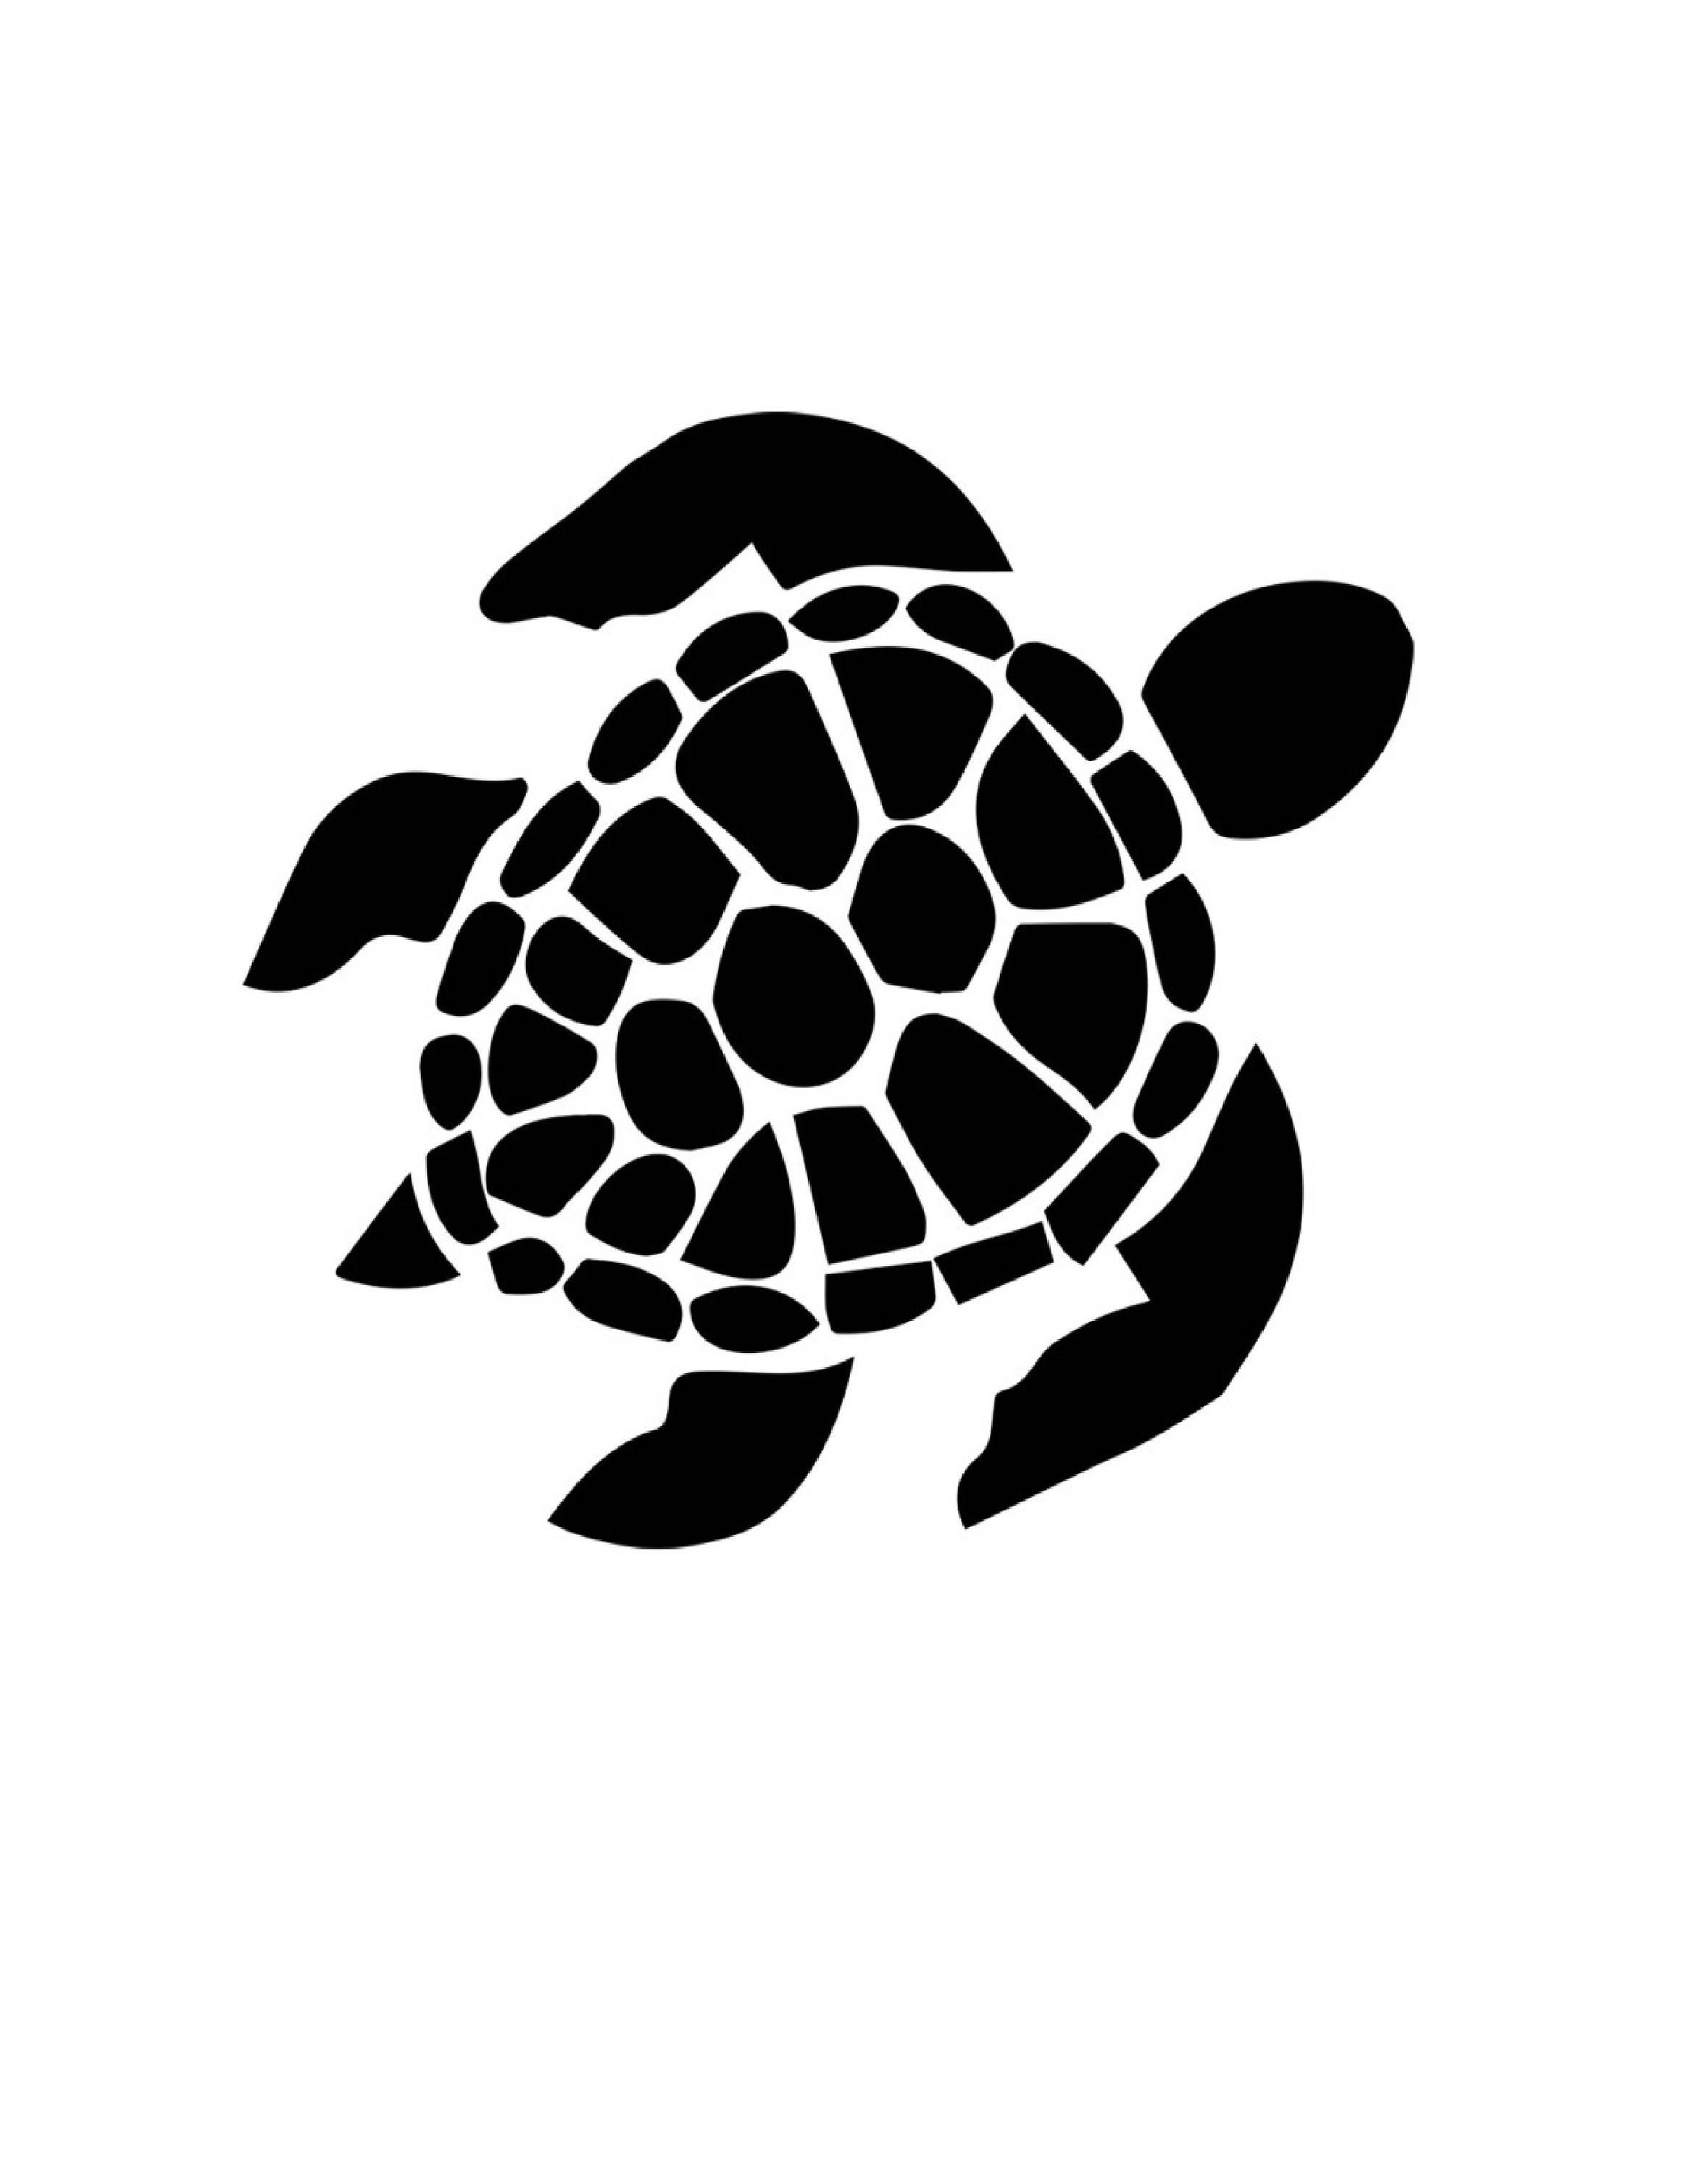 Wall Sea Turtle Instant Download Jpg Png Printable Art Etsy Turtle Wall Decals Turtle Silhouette Sea Turtle Decal